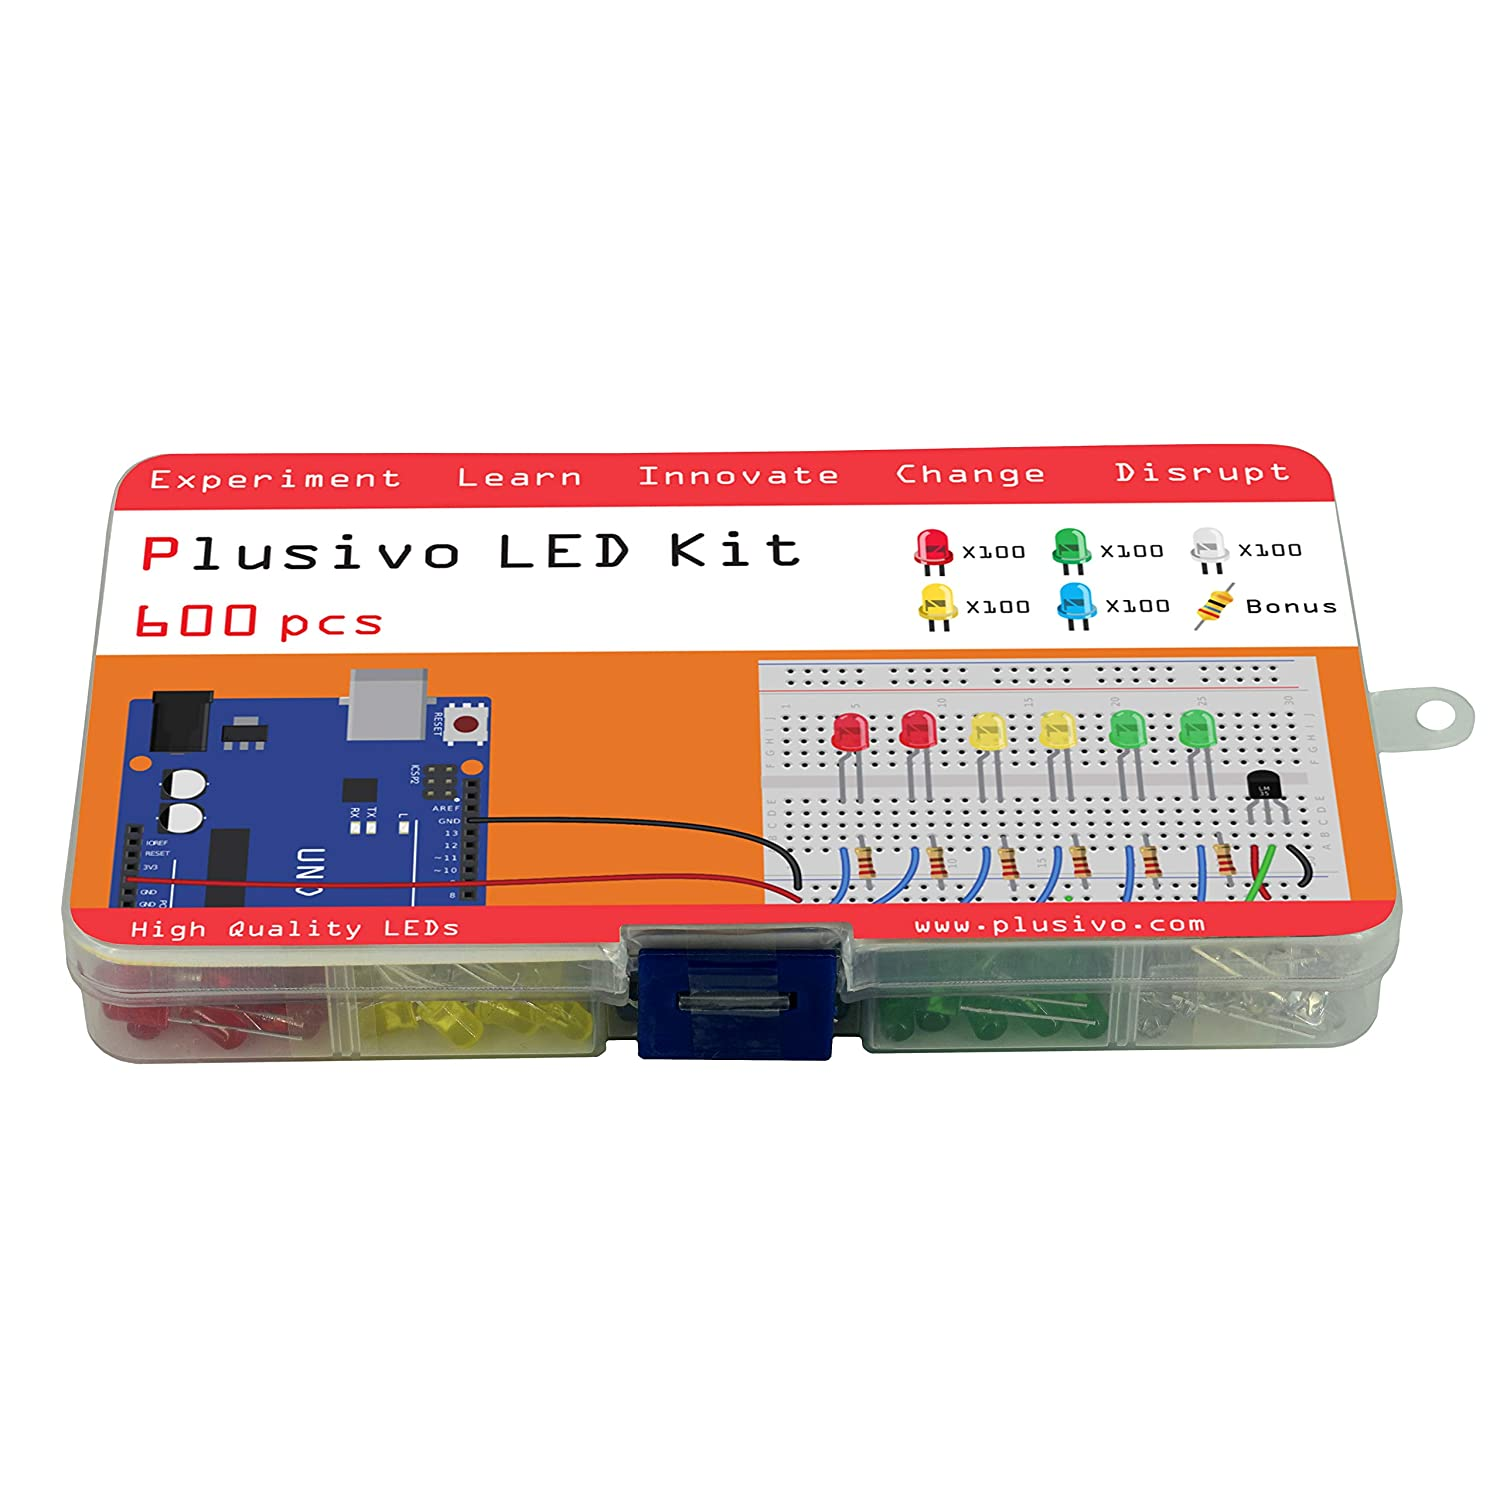 Yellow - Red 600 pcs Green 5mm Diffused LED Diode Assortment Kit Pack of Assorted Color LEDs and Resistors Blue and White Light Emiting Diode Indicator Lights from Plusivo